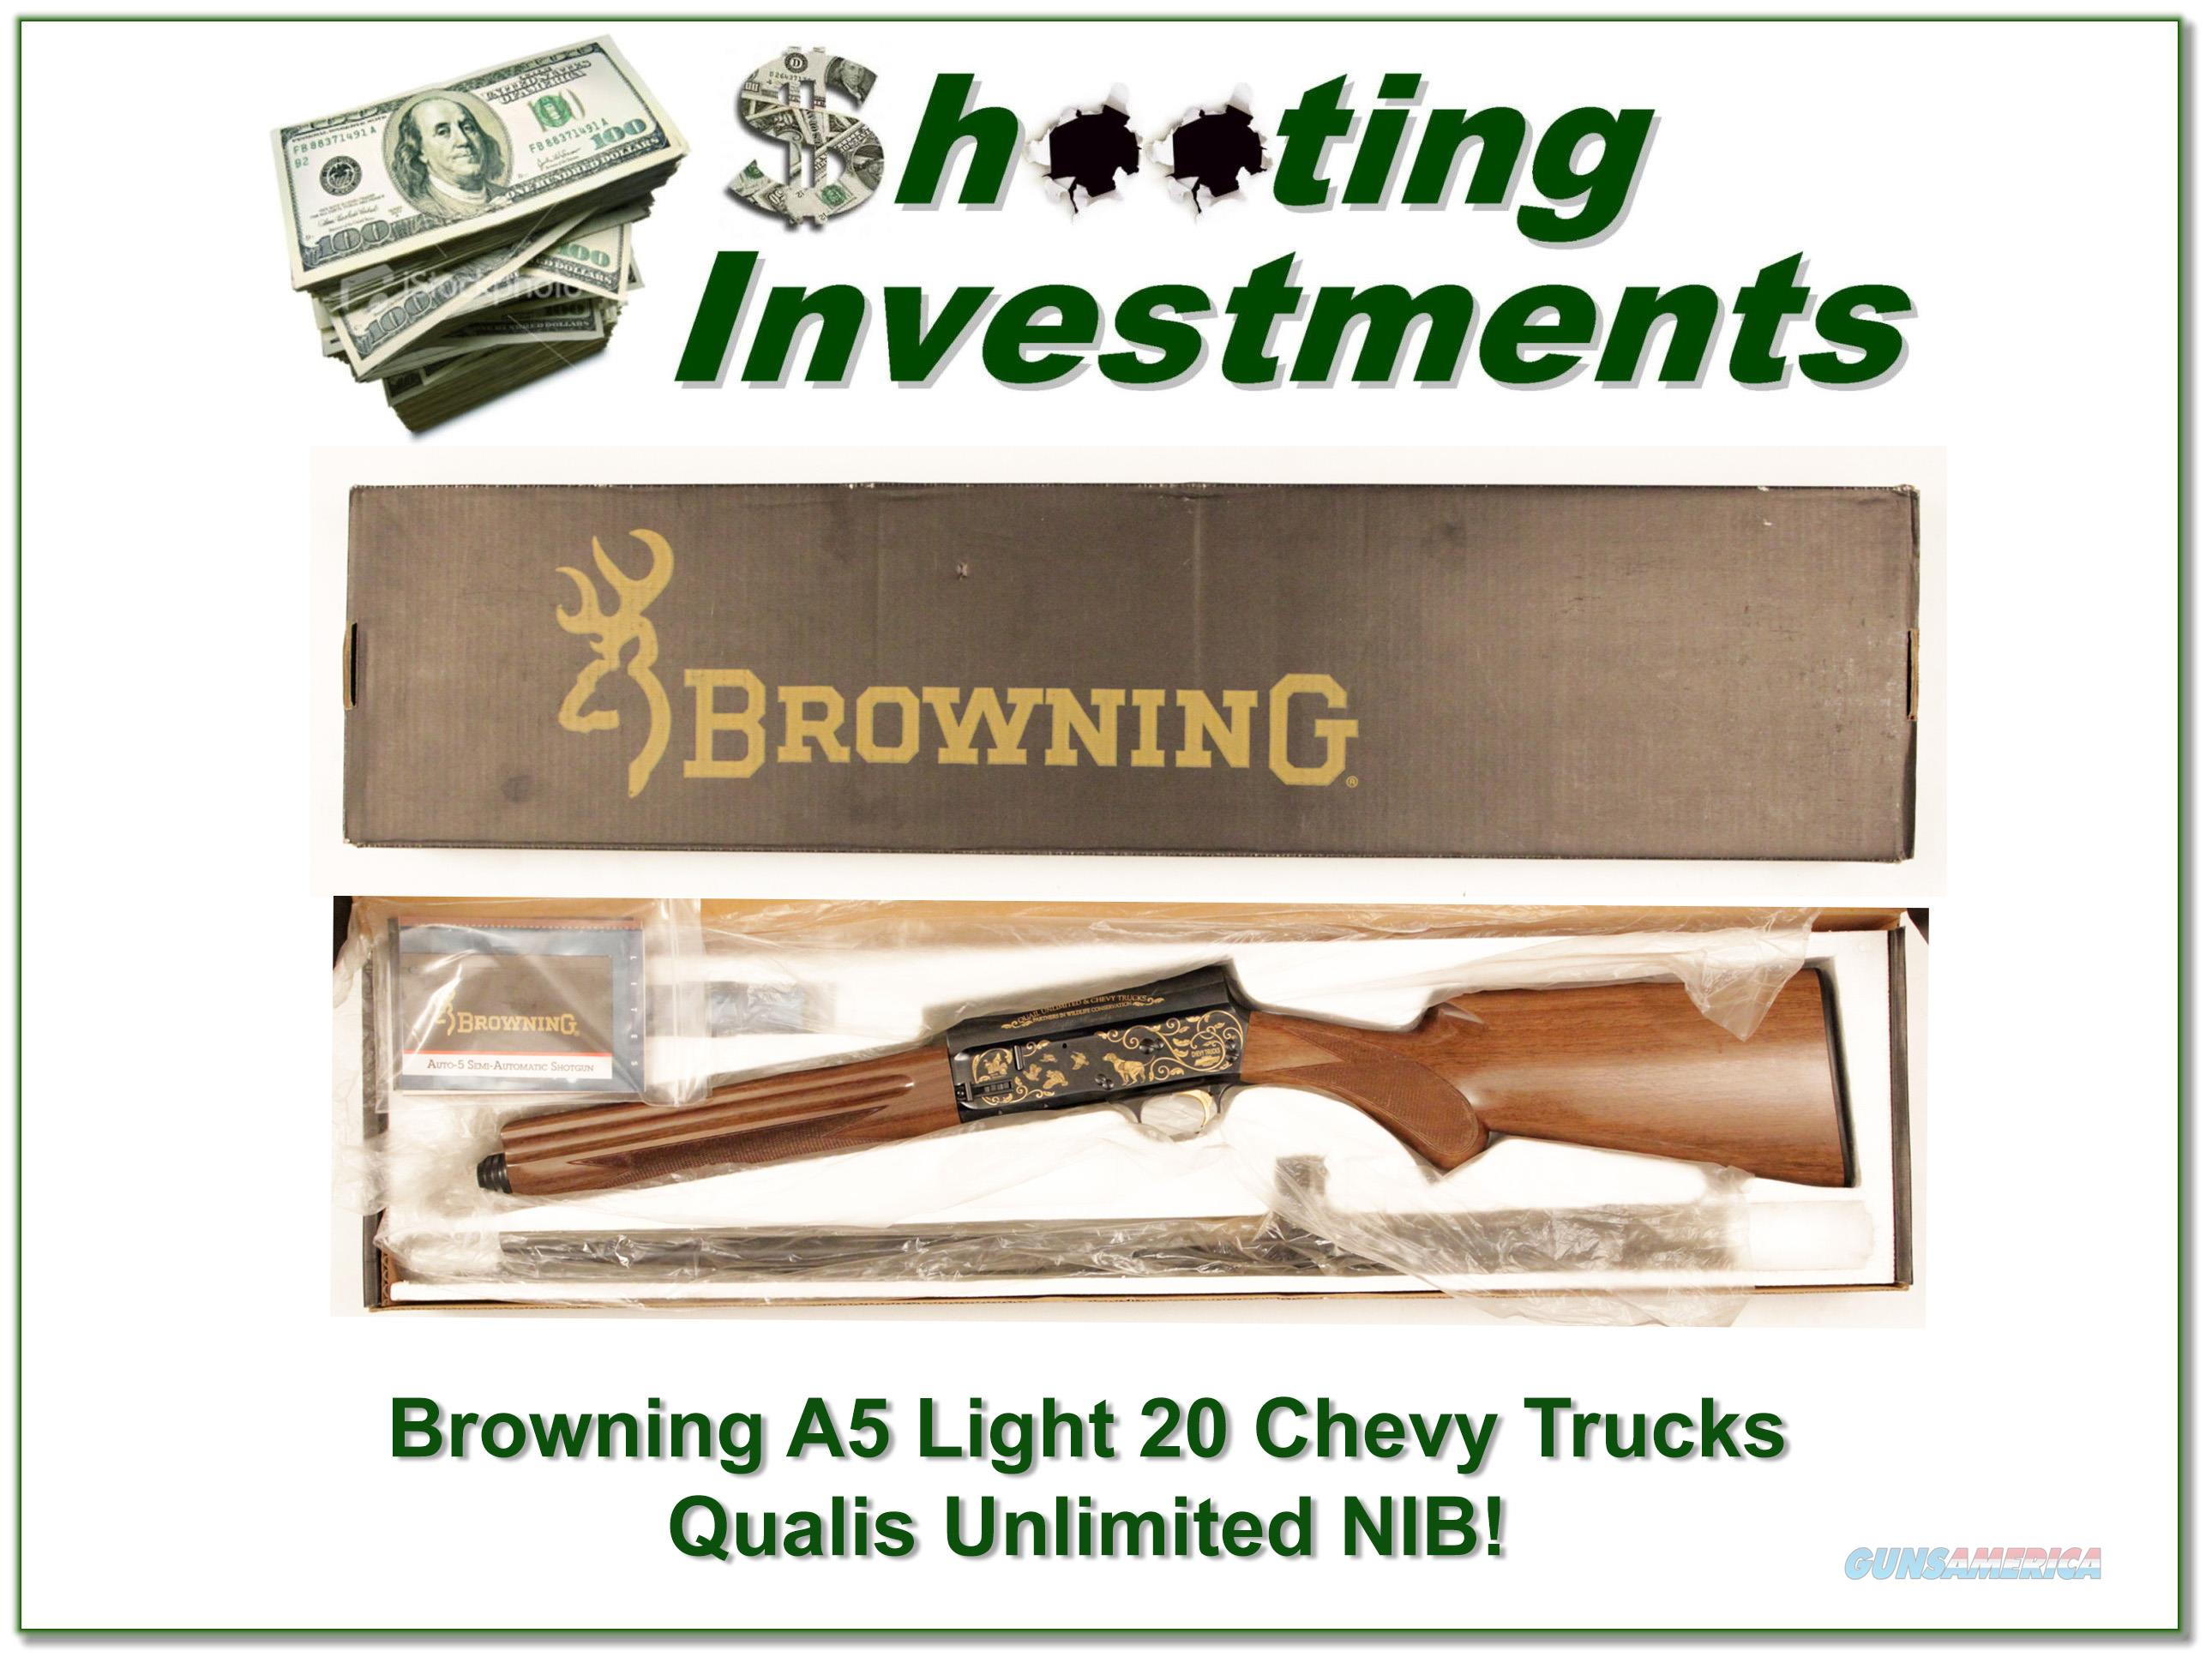 Browning A5 Light 20 Quails Unlimited Chevy Trucks 5 of 100 NIB!  Guns > Shotguns > Browning Shotguns > Autoloaders > Hunting